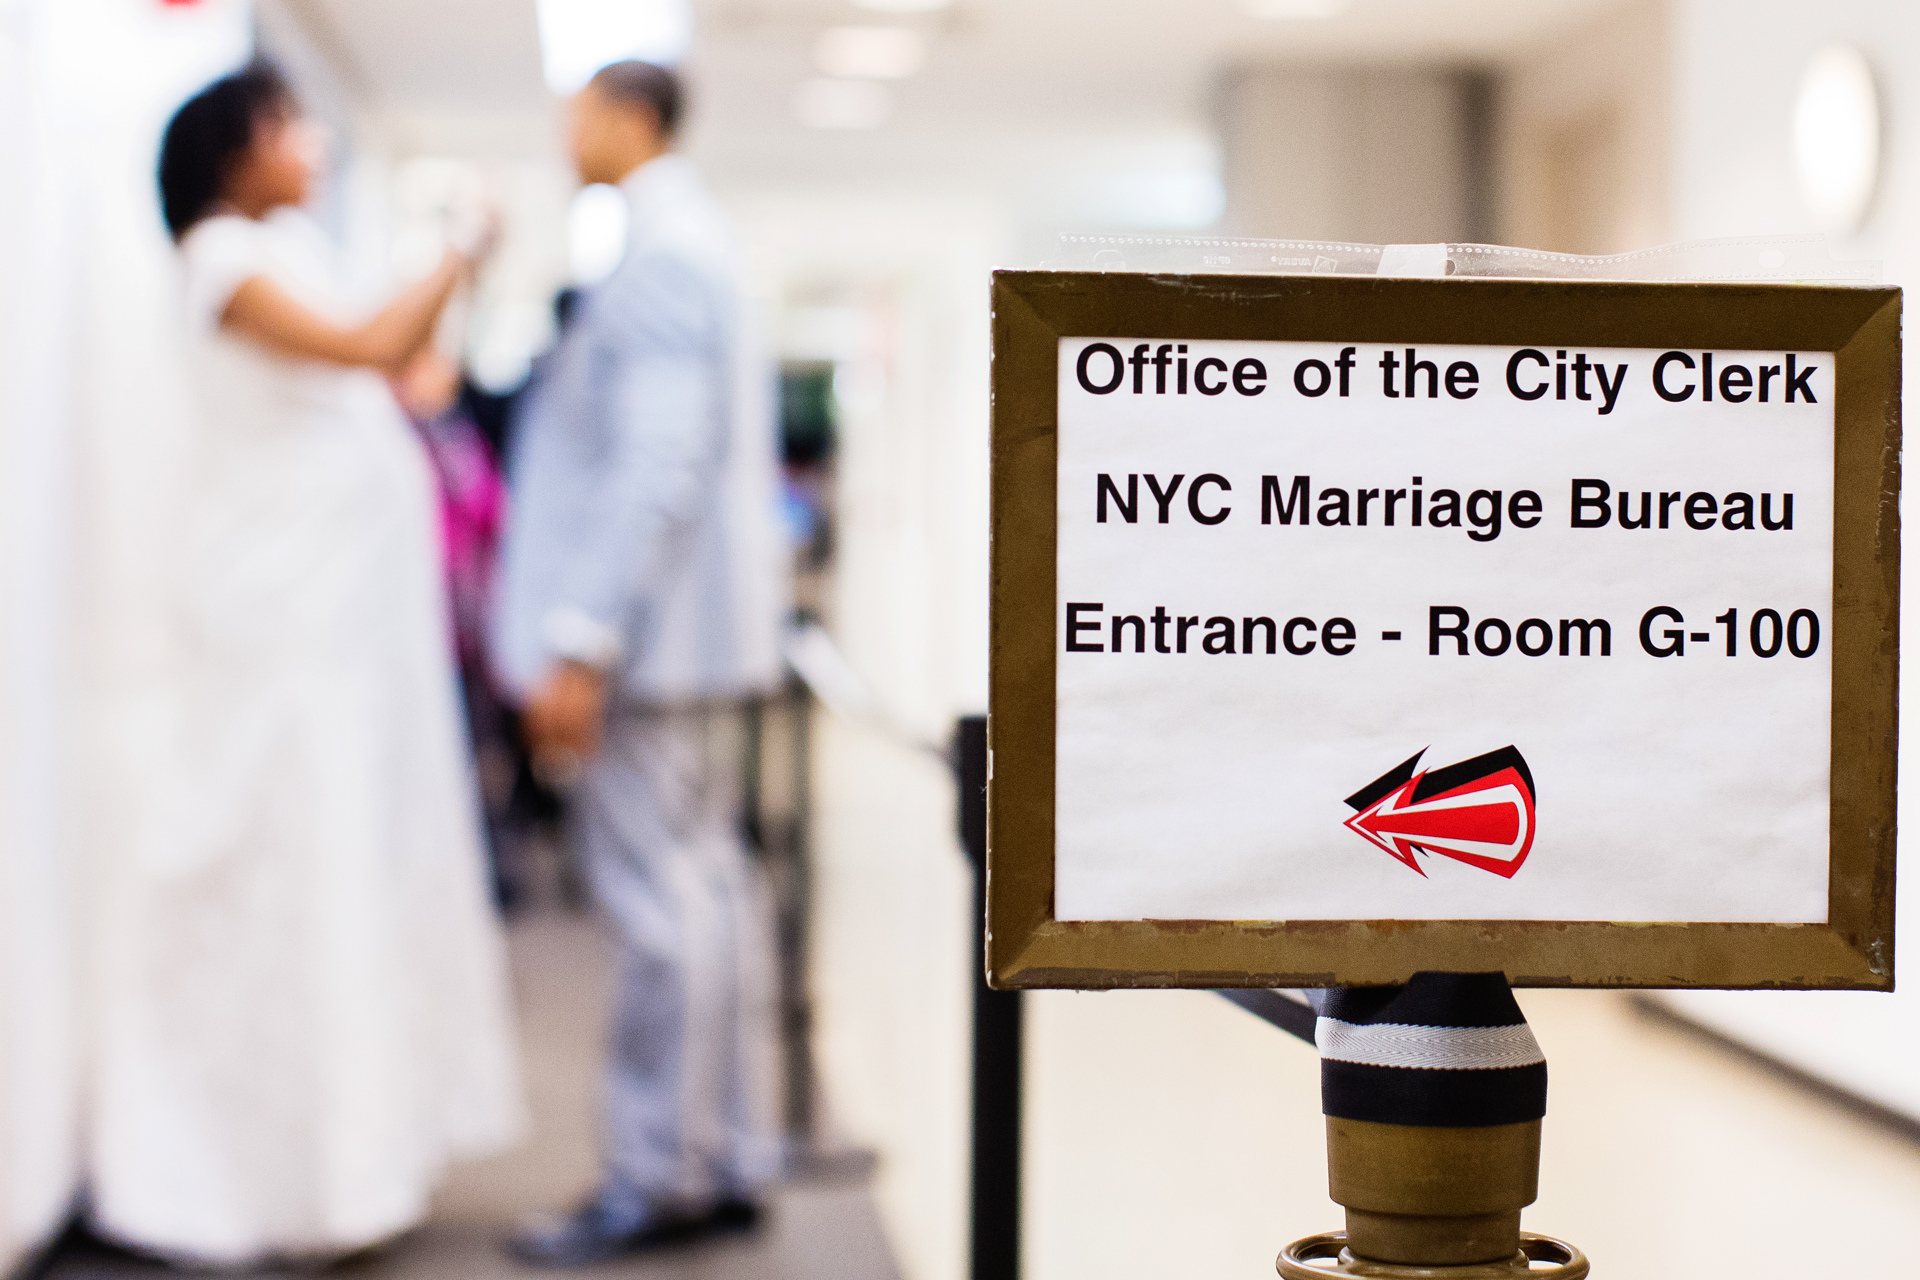 NYC - Queens Elopement Photography | they await their turn in line at the New York City Marriage Bureau